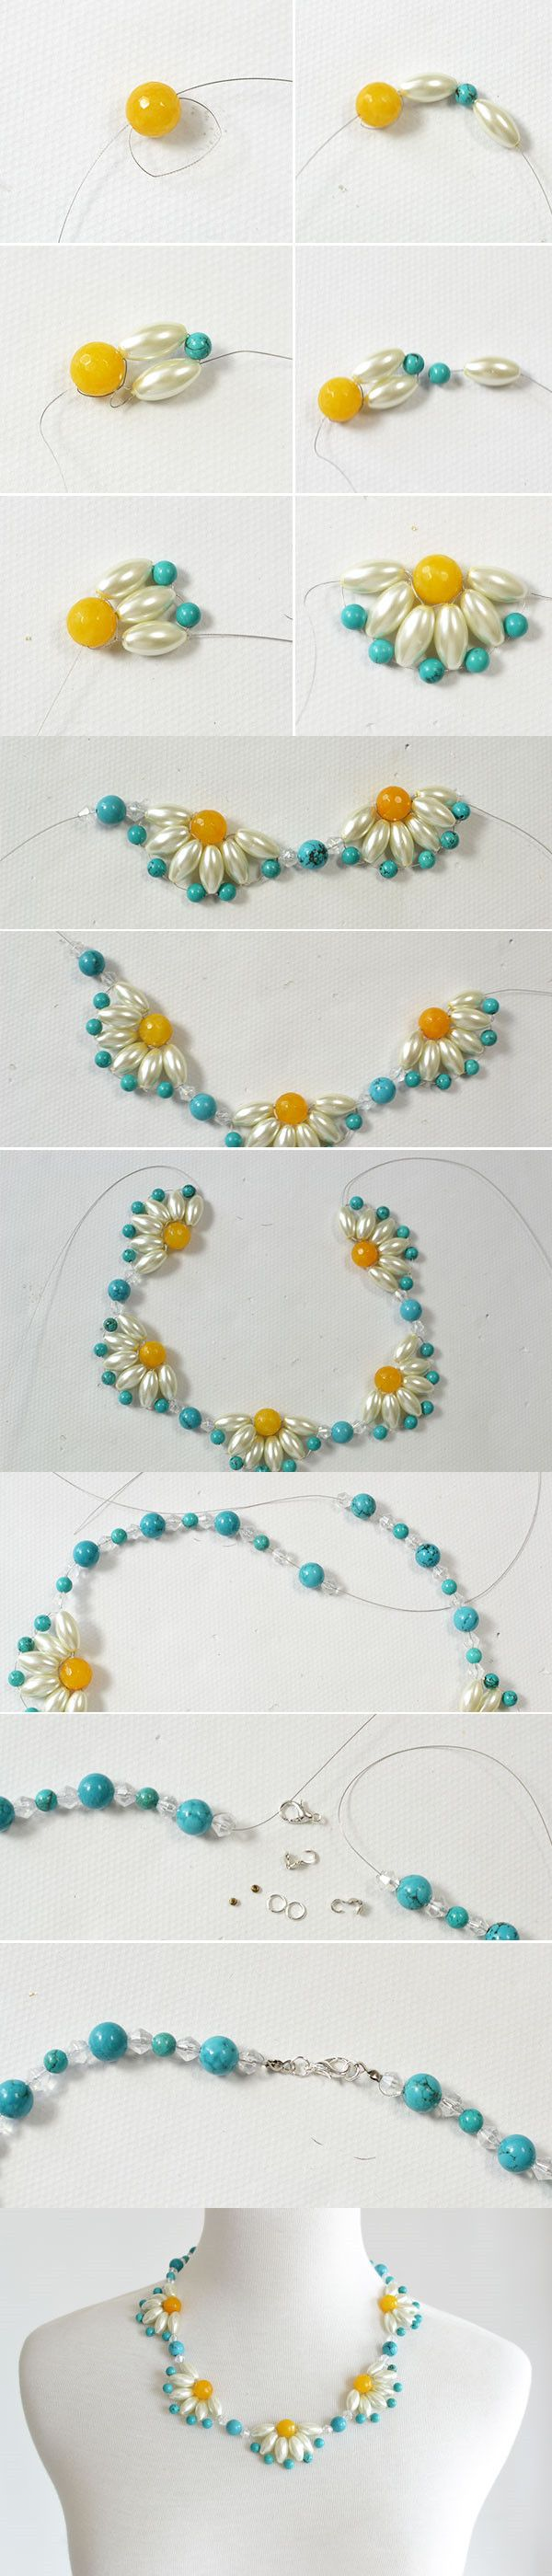 on will images naharet best tutorial beaded beading tutorials beads published be bracelets jewelry wanna pinterest bracelet by it flower the